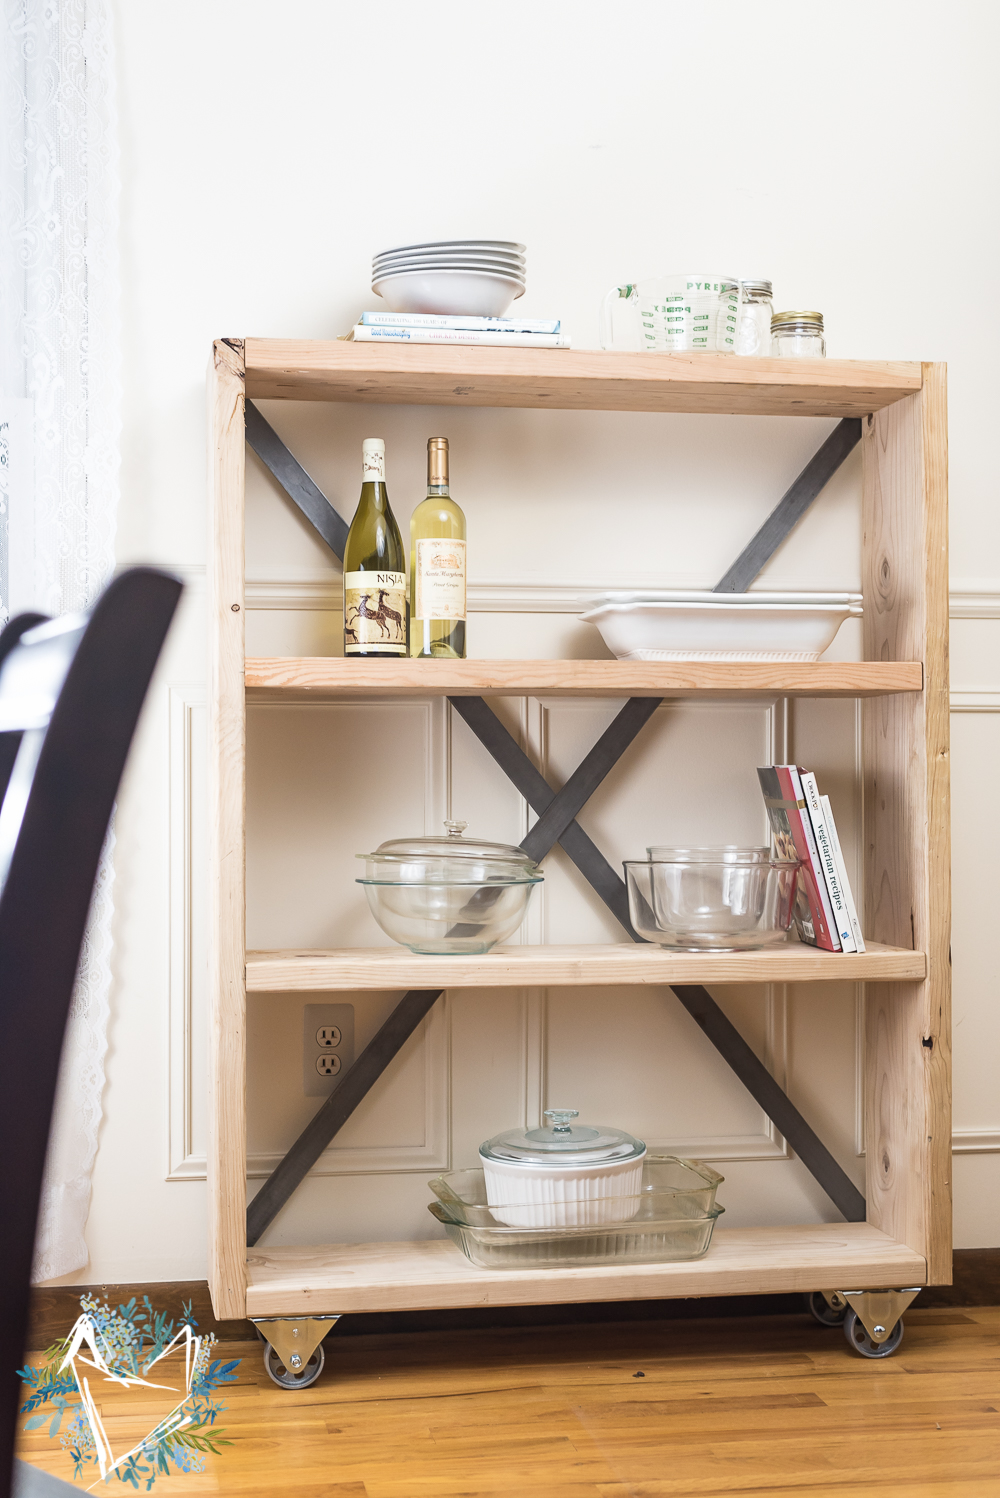 diy-industrial-famhouse-pantry-shelf-3